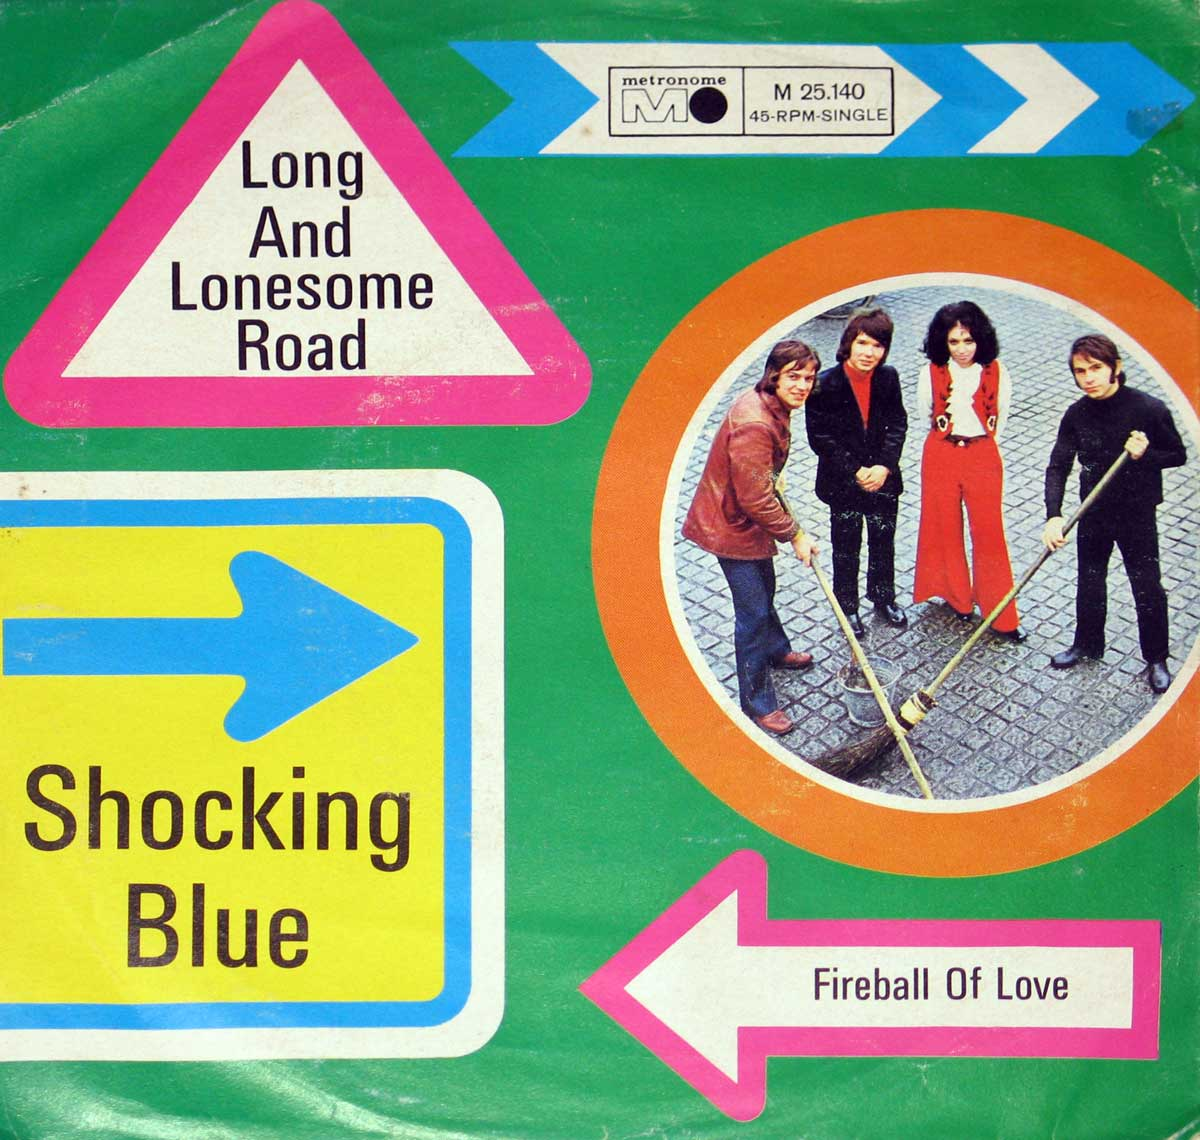 large photo of the album front cover of: Shocking Blue - Long and Lonesome Road